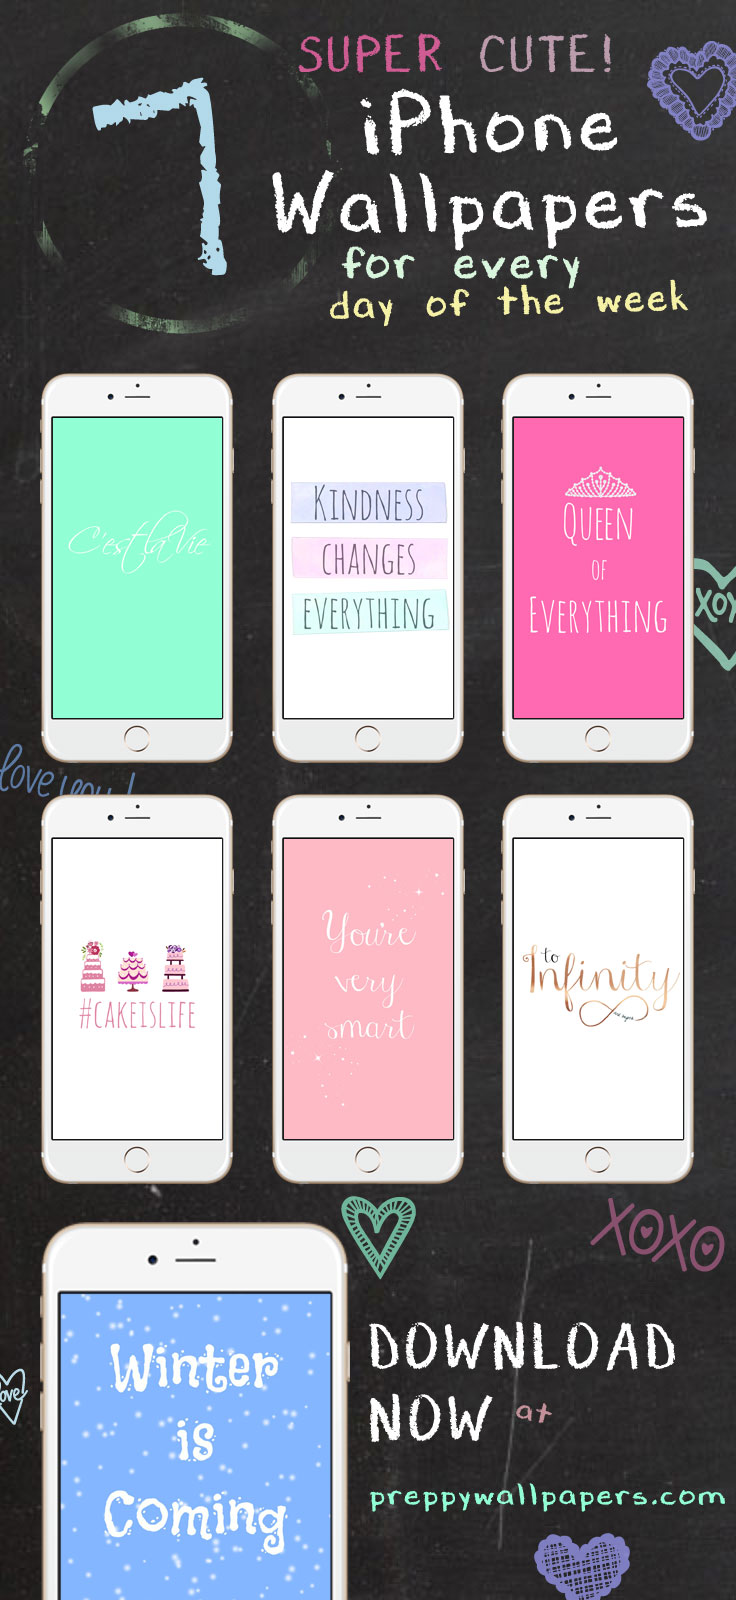 Motivational Quotes Wallpapers Hd For Mobile 7 Super Cute Iphone Wallpapers For Every Day Of The Week